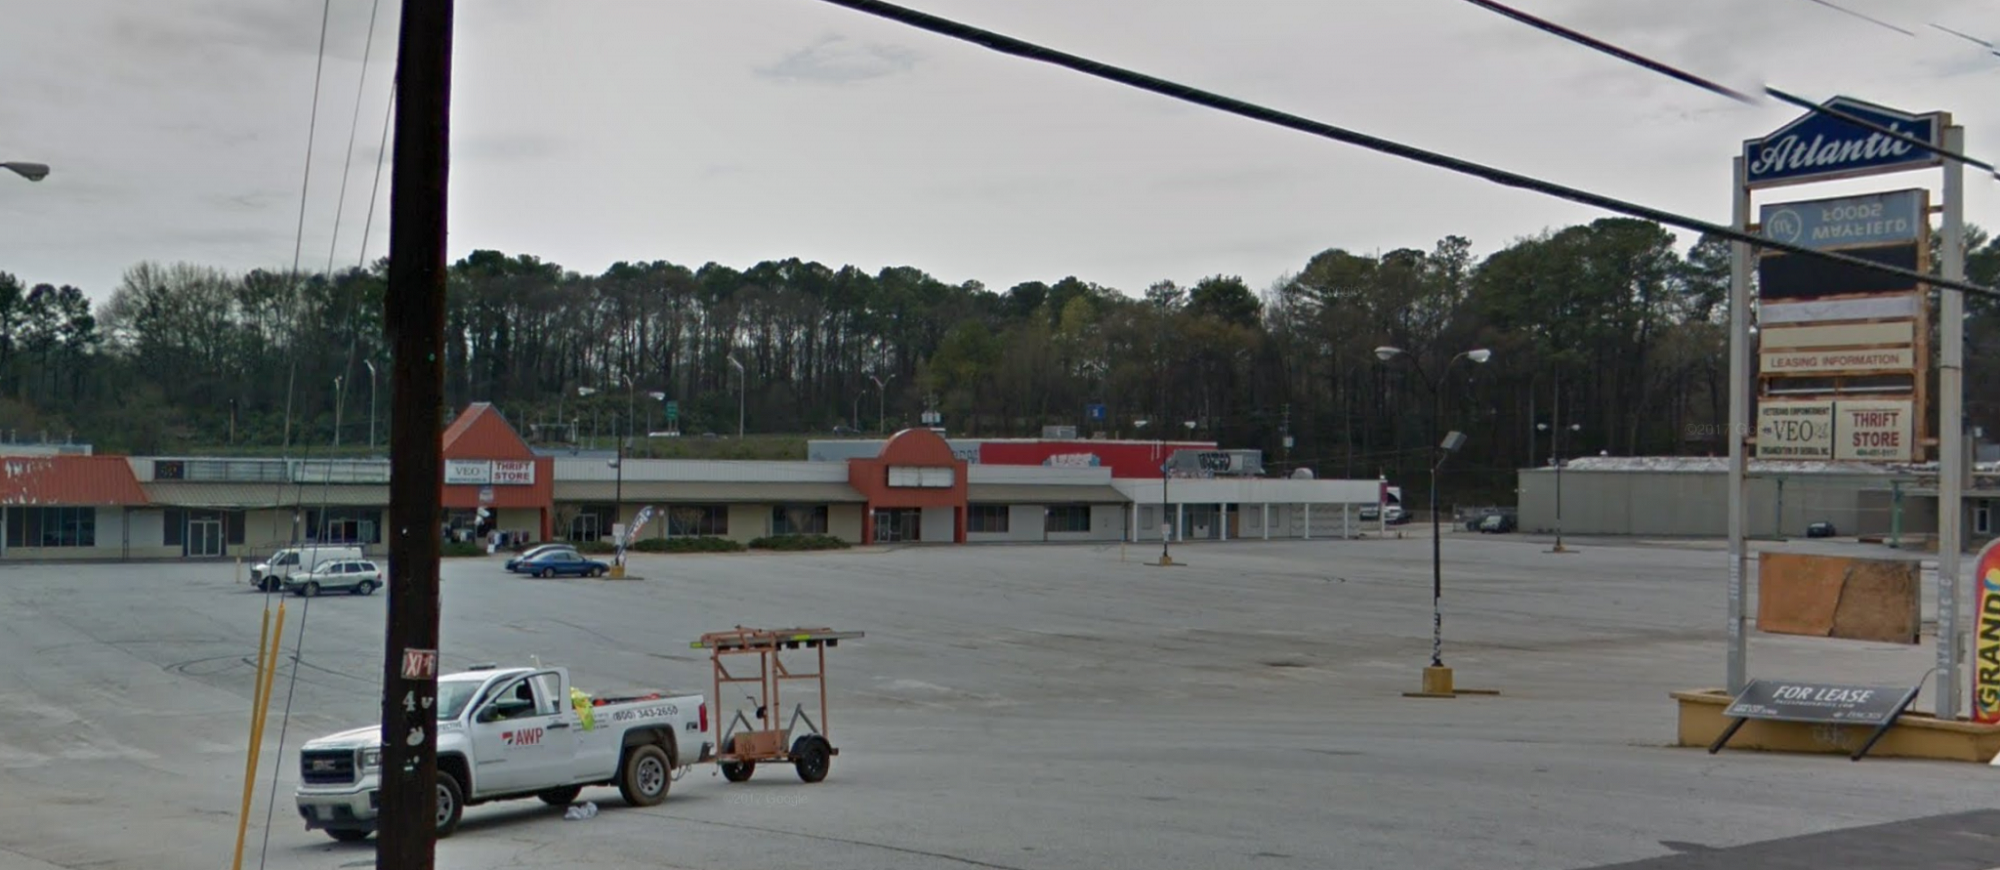 Floor and Decor Coming to Memorial Drive near Ann's Snack Bar